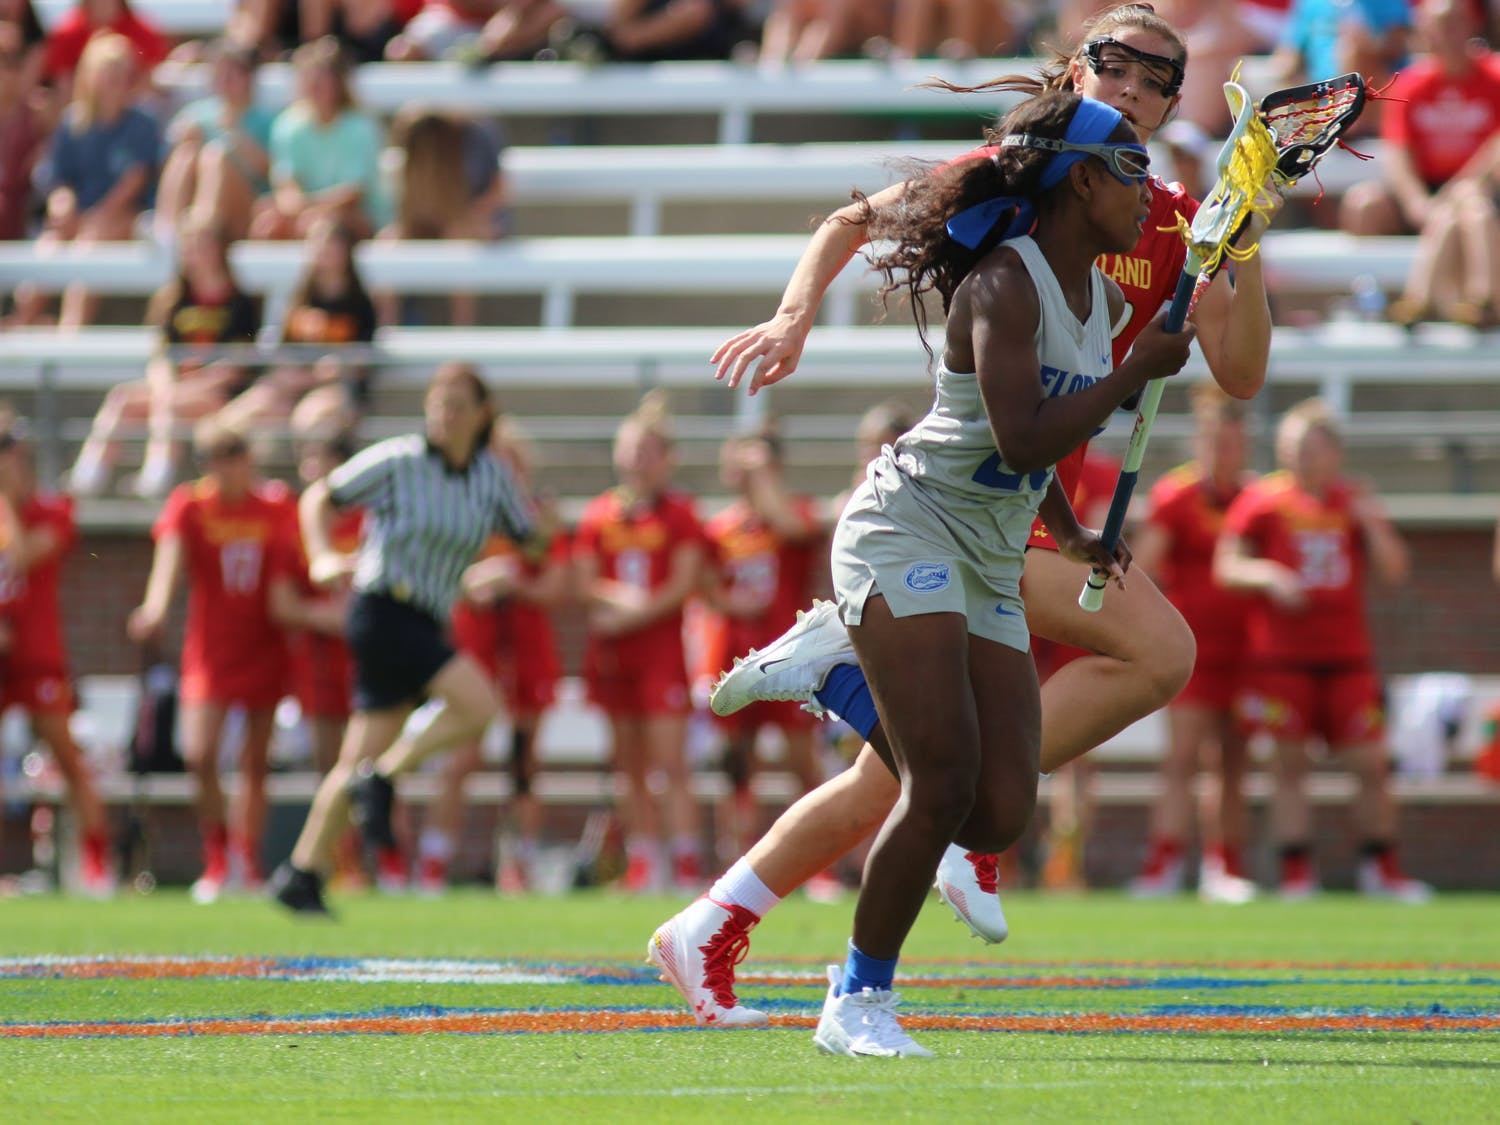 Senior Aniya Flanagan has missed UF's last two games with an undisclosed injury.